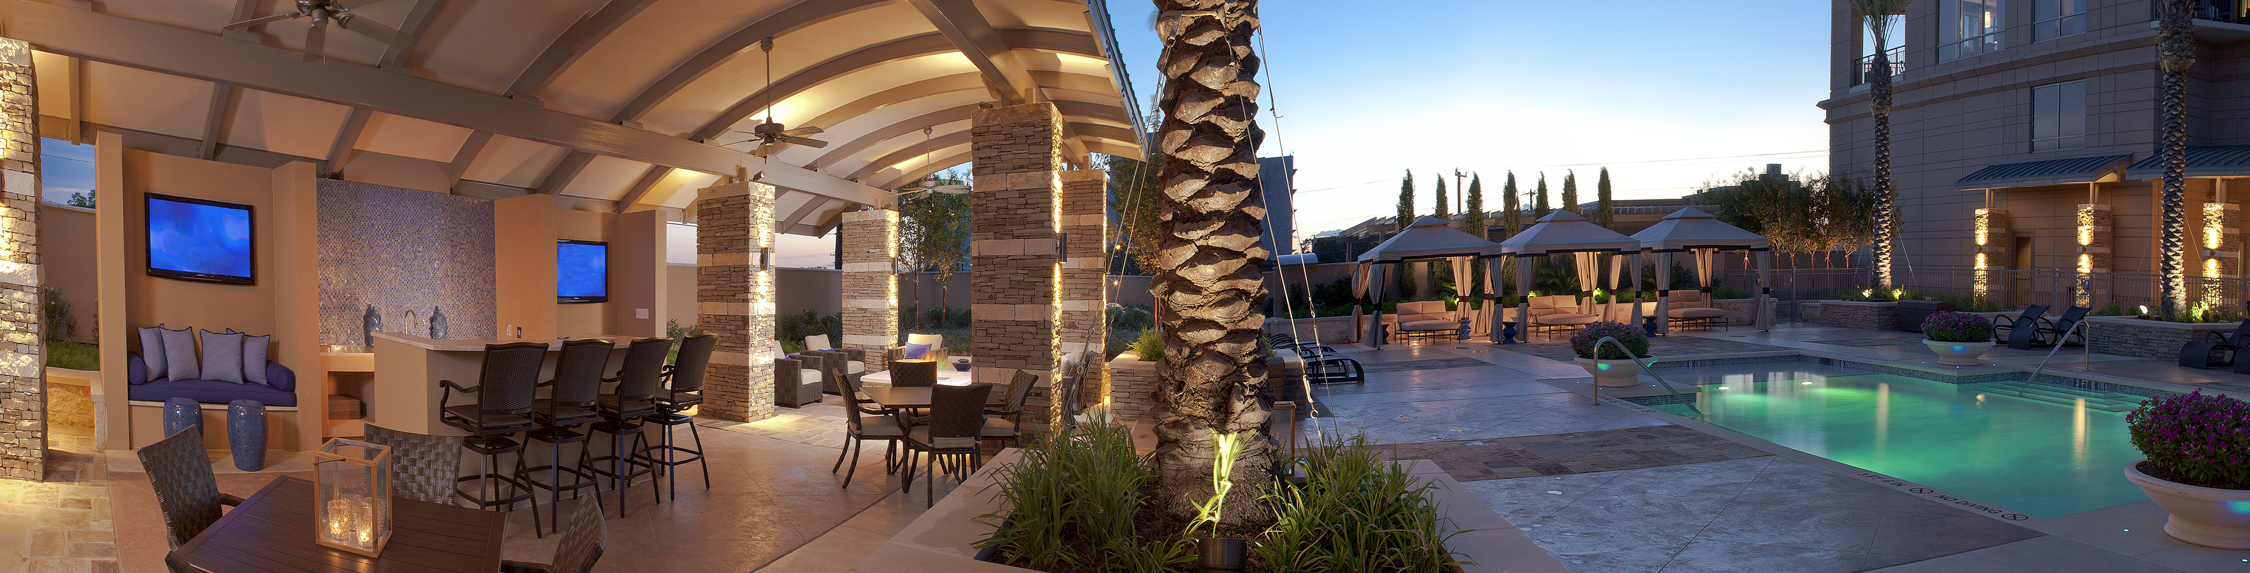 Outdoor Kitchens For Commercial Properties Enhanced Earth